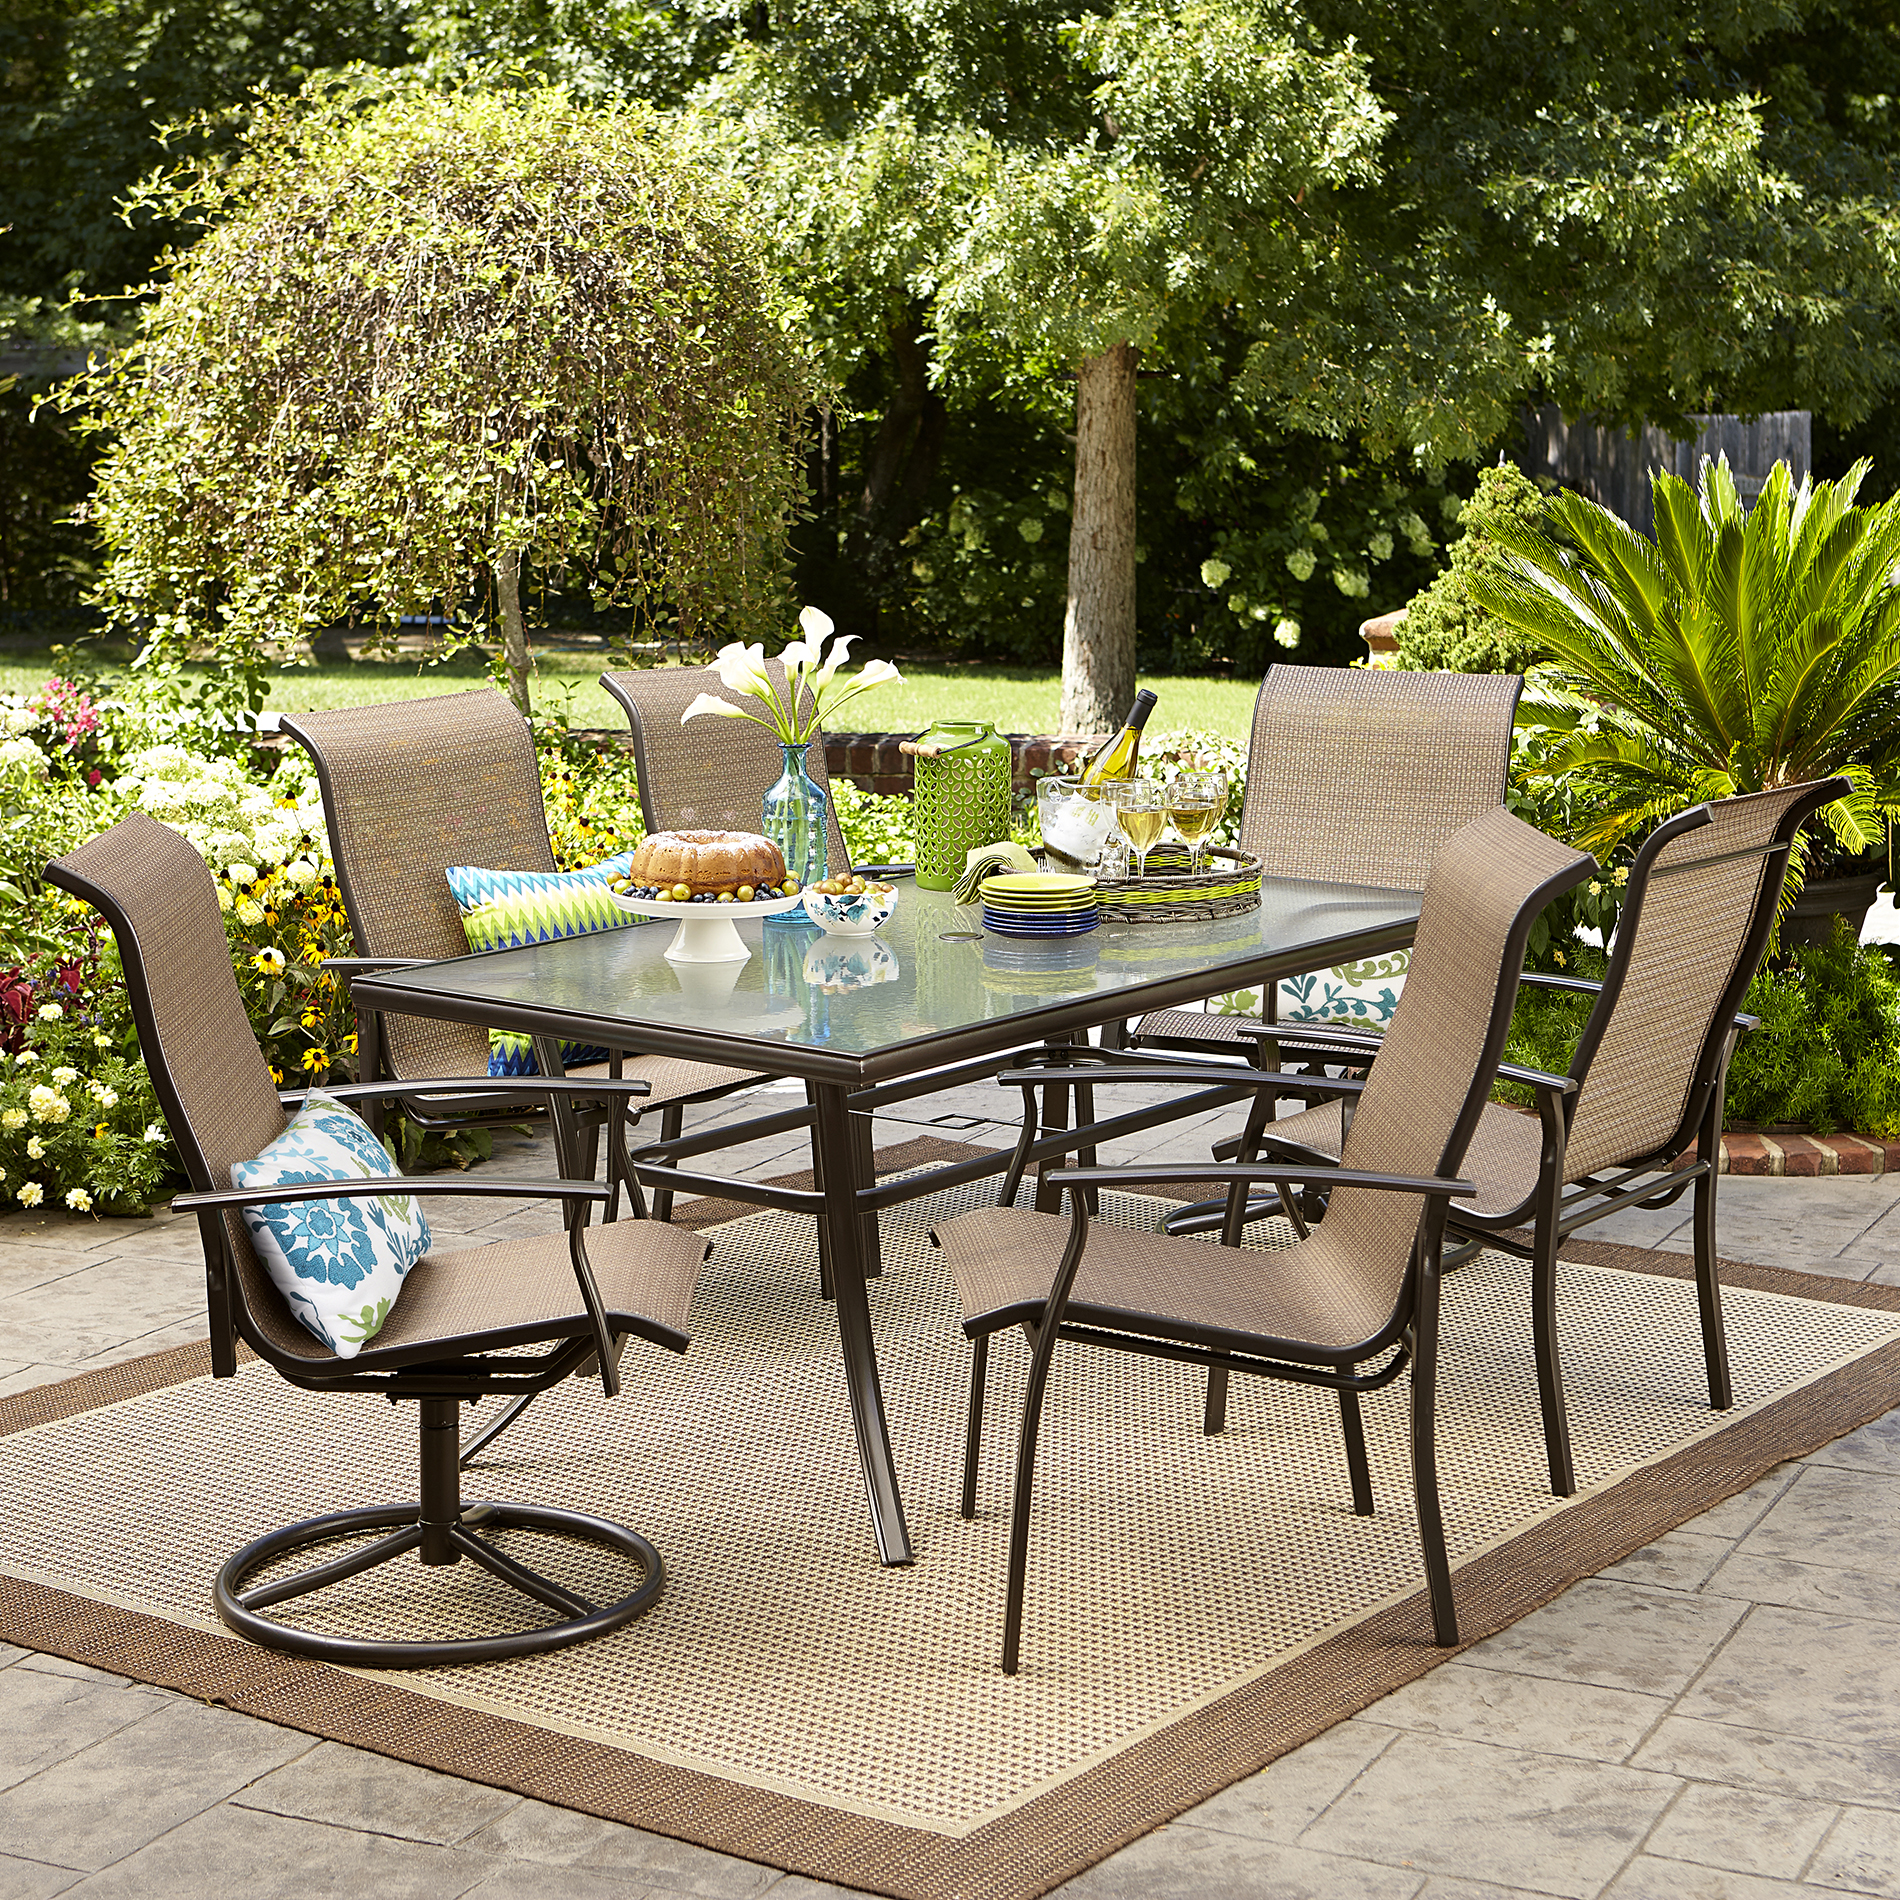 Outdoor dining sets Dining set with structured glass top * limited availability JRQSOYB